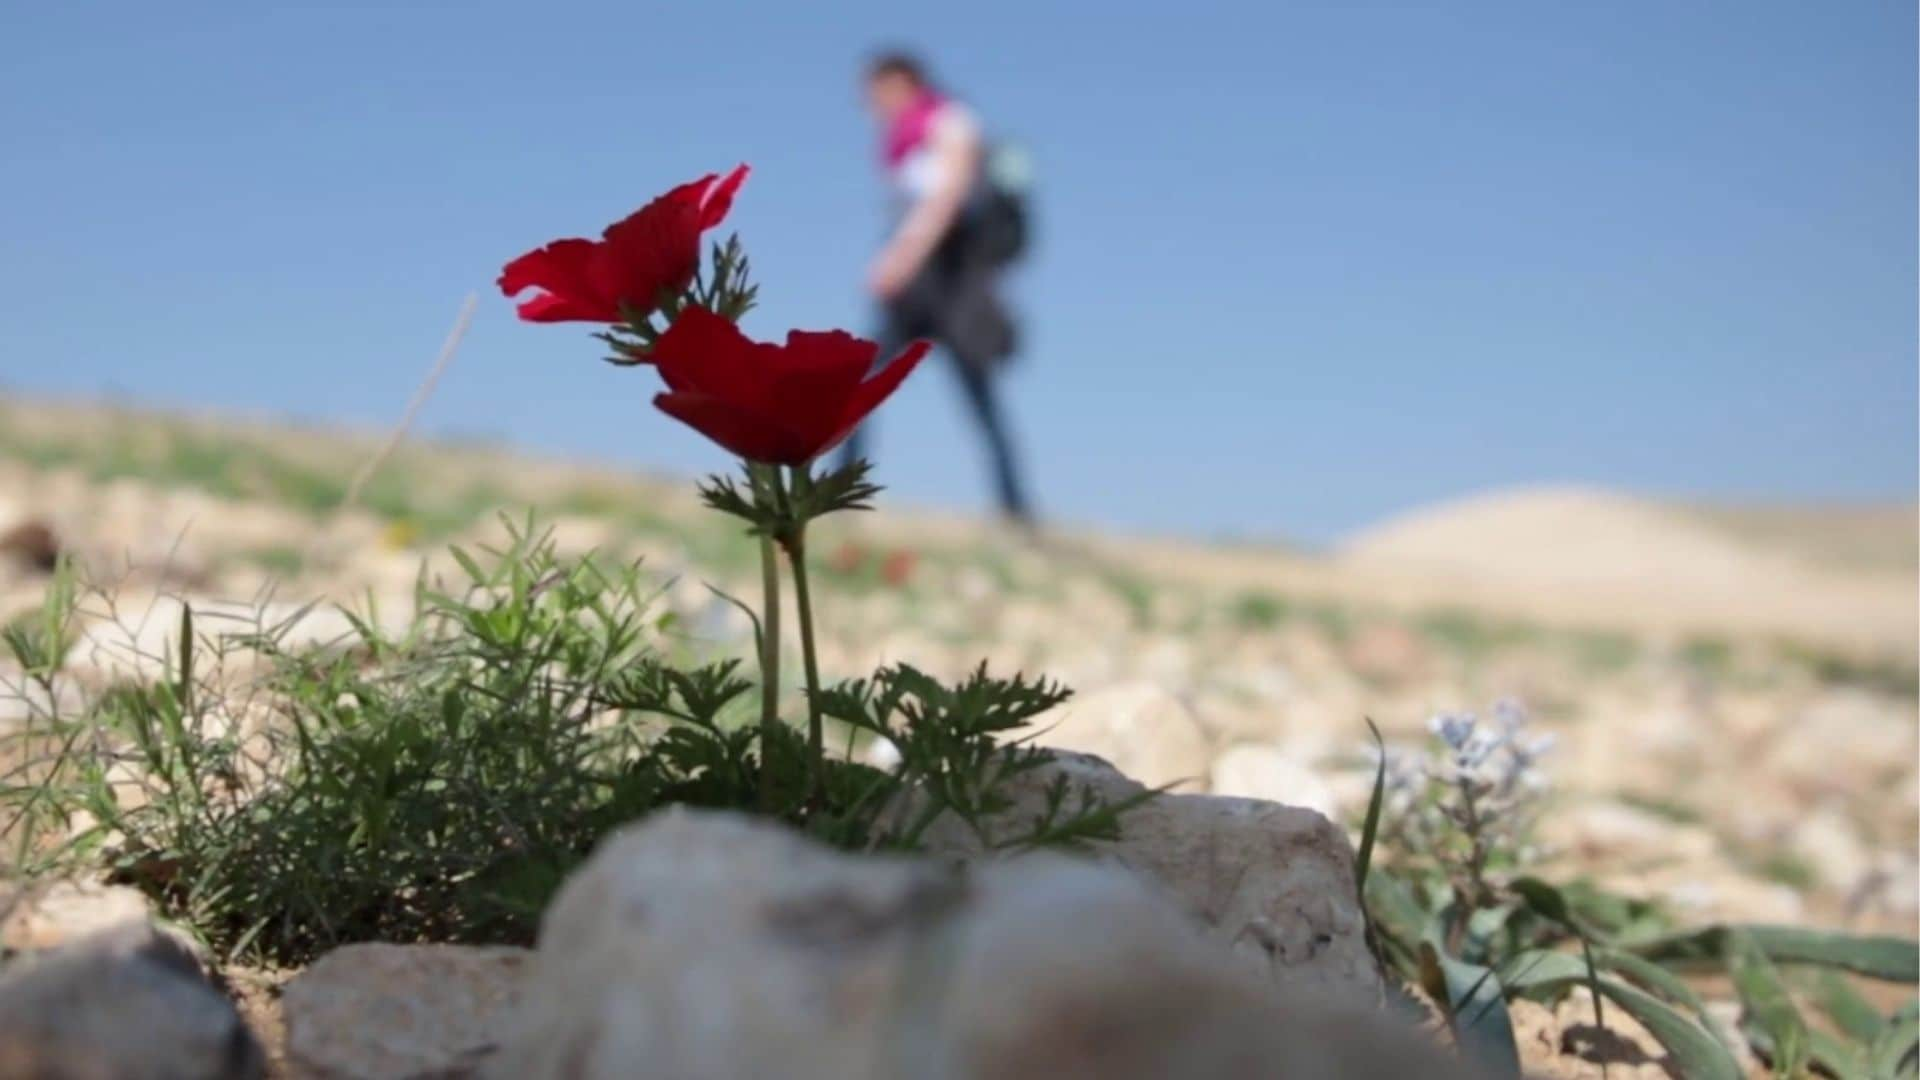 A Million Steps for Love: Exhibition captures moments from a documentary on pilgrimage of 'love' to Jerusalem